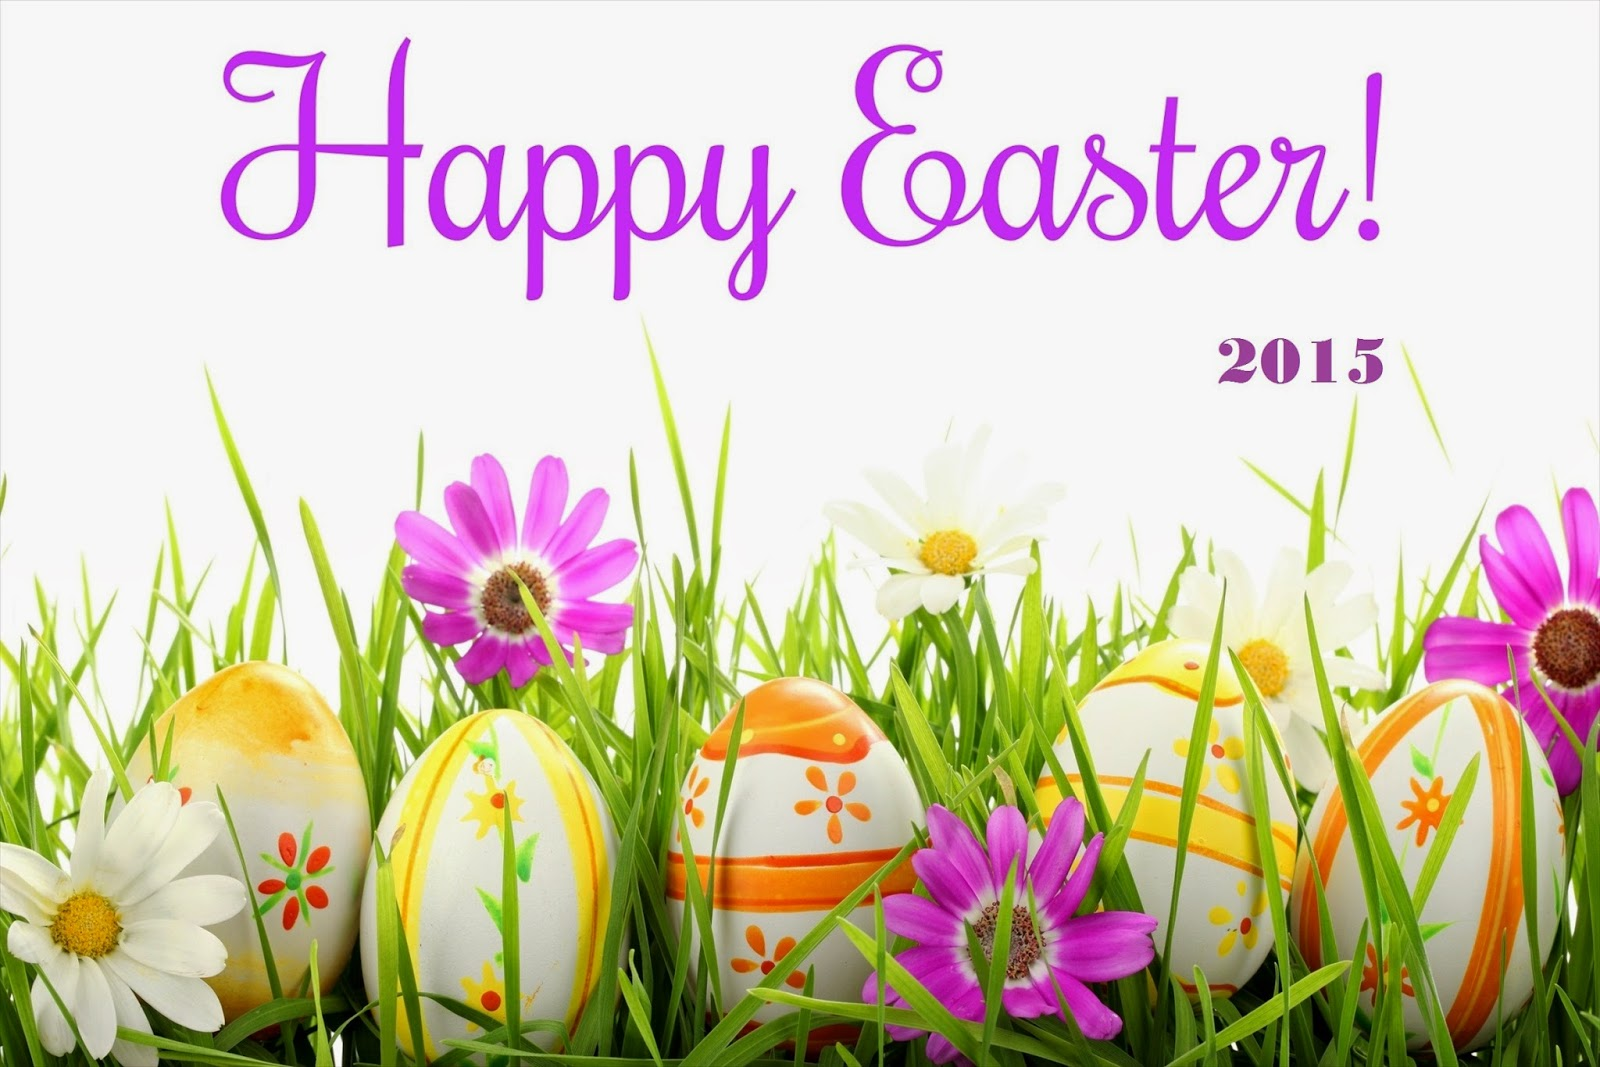 12 unique easter wishes greetings messages recipes cards happy easter wishes images m4hsunfo